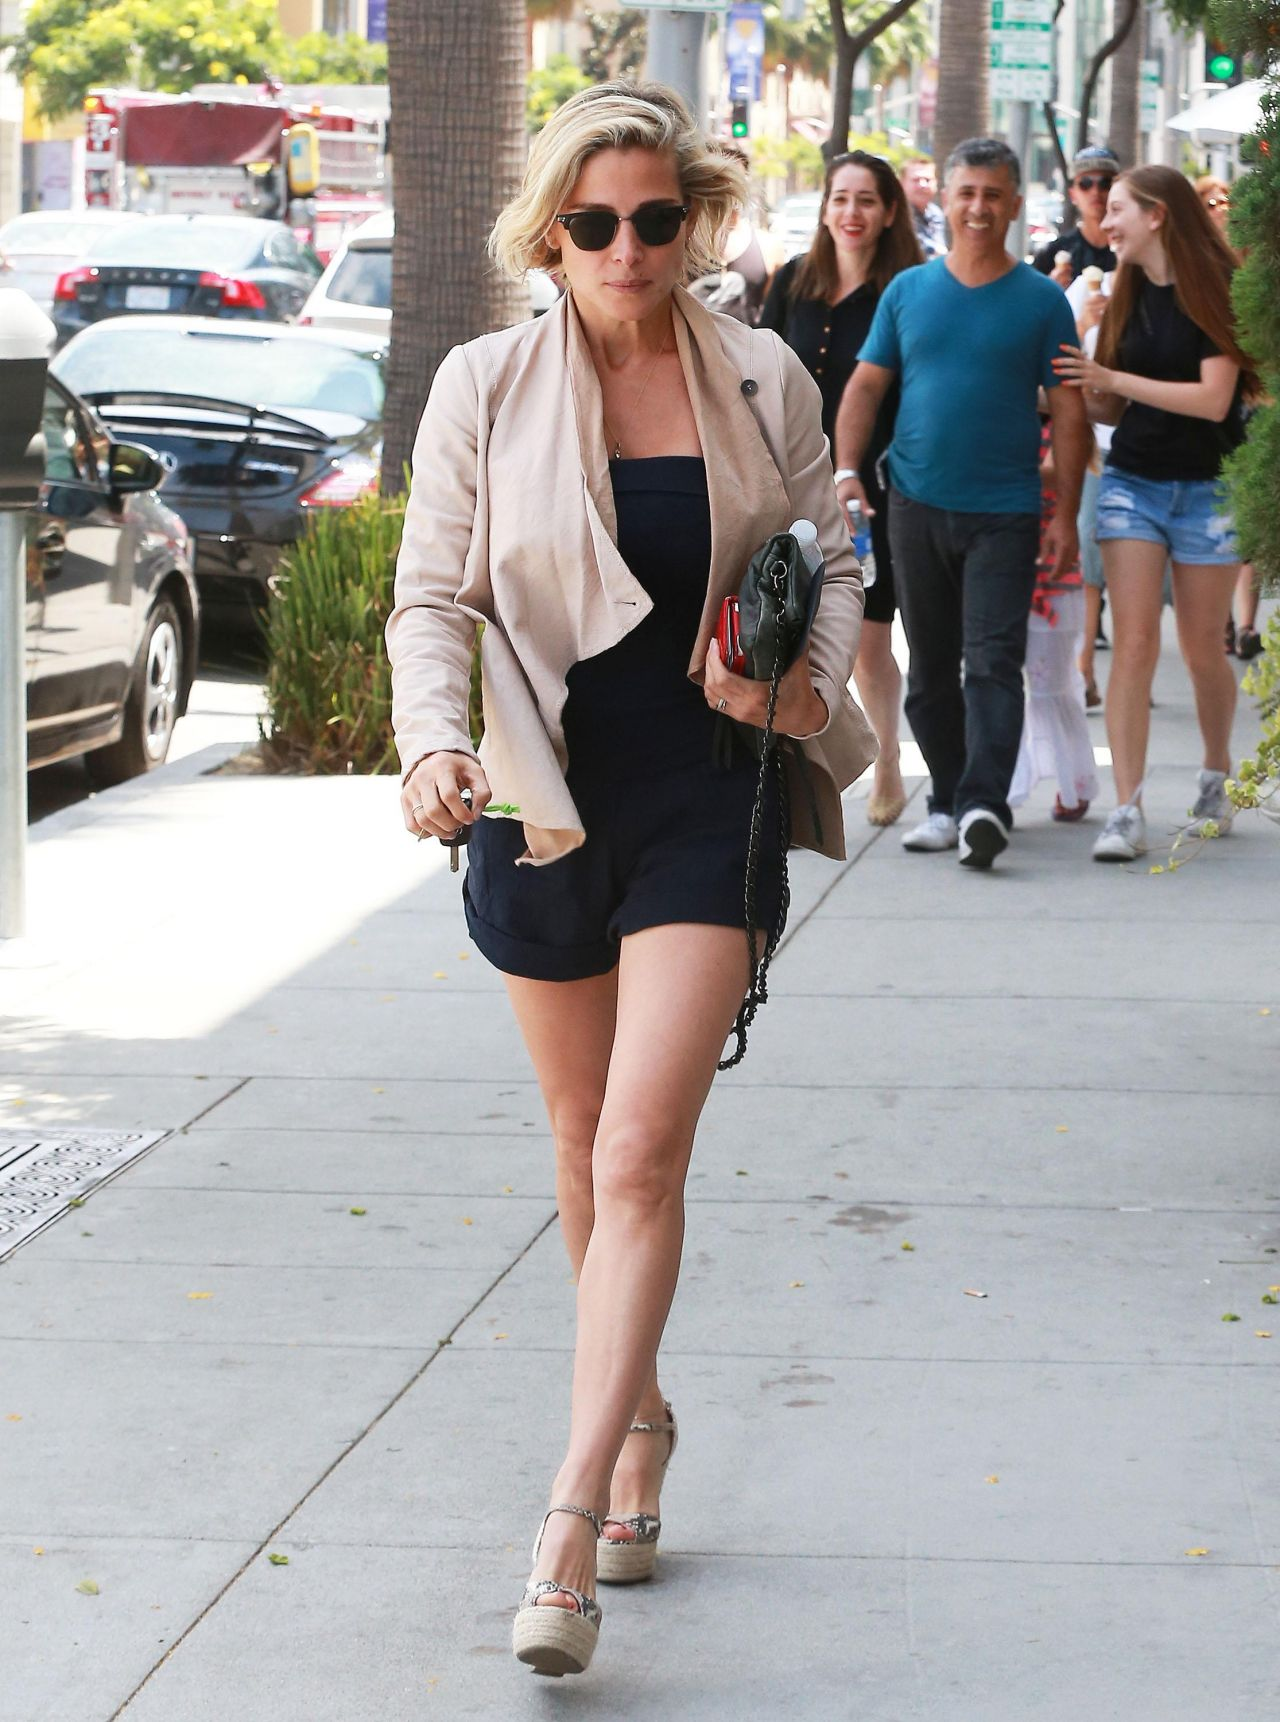 Elsa Pataky Hot Legs Shopping In Beverly Hills August 2014